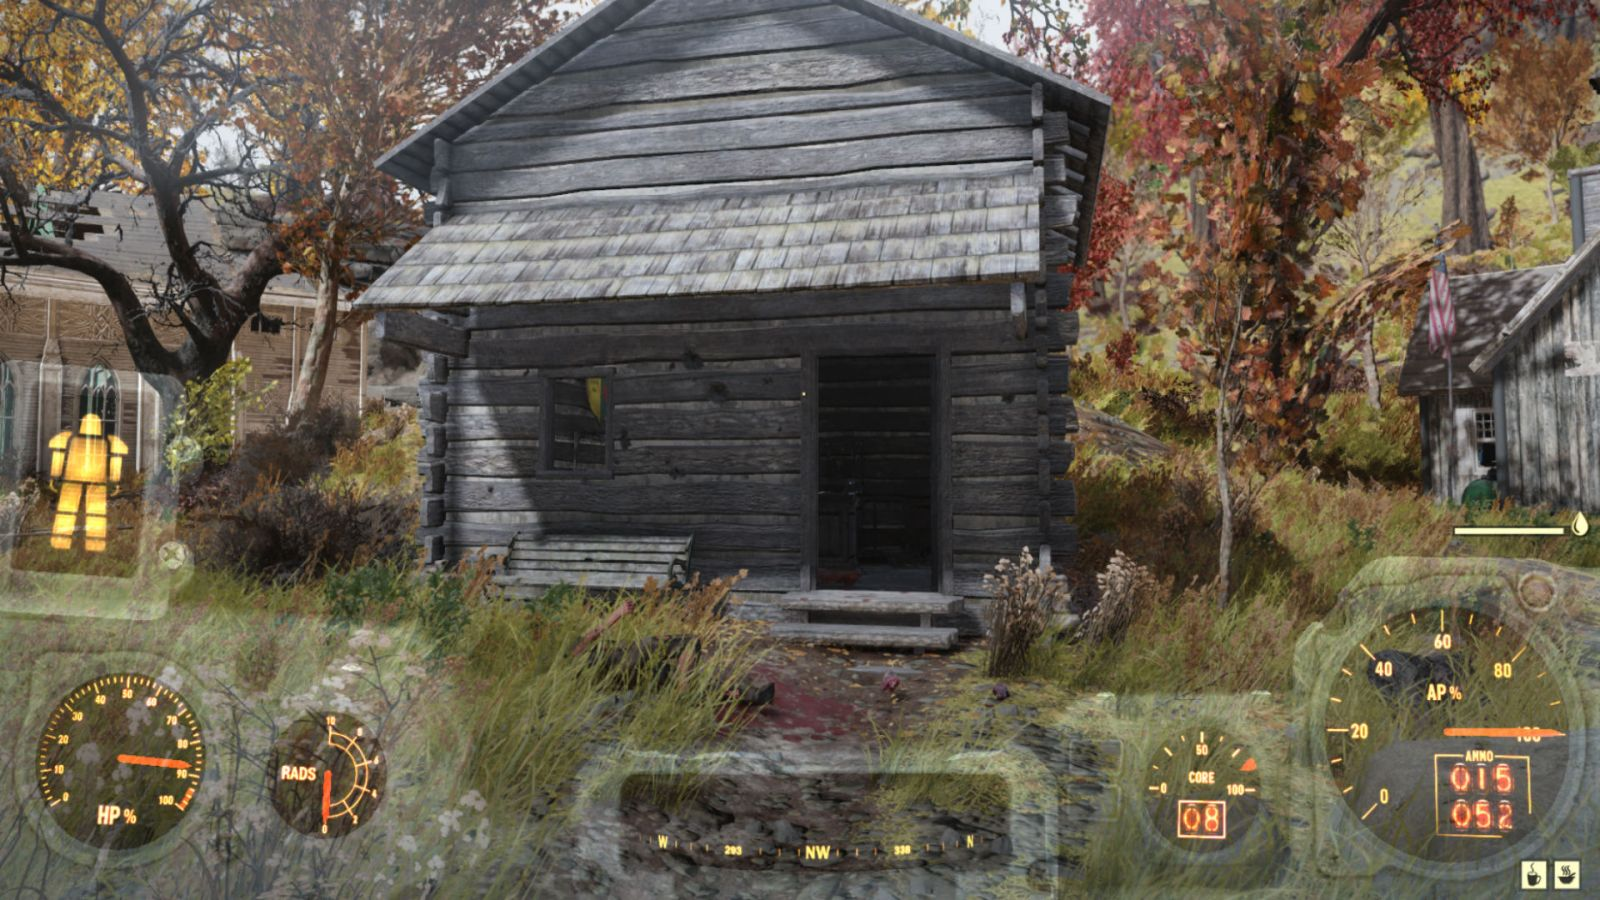 Find Fallout 76 Rare Weapons - fo76items com